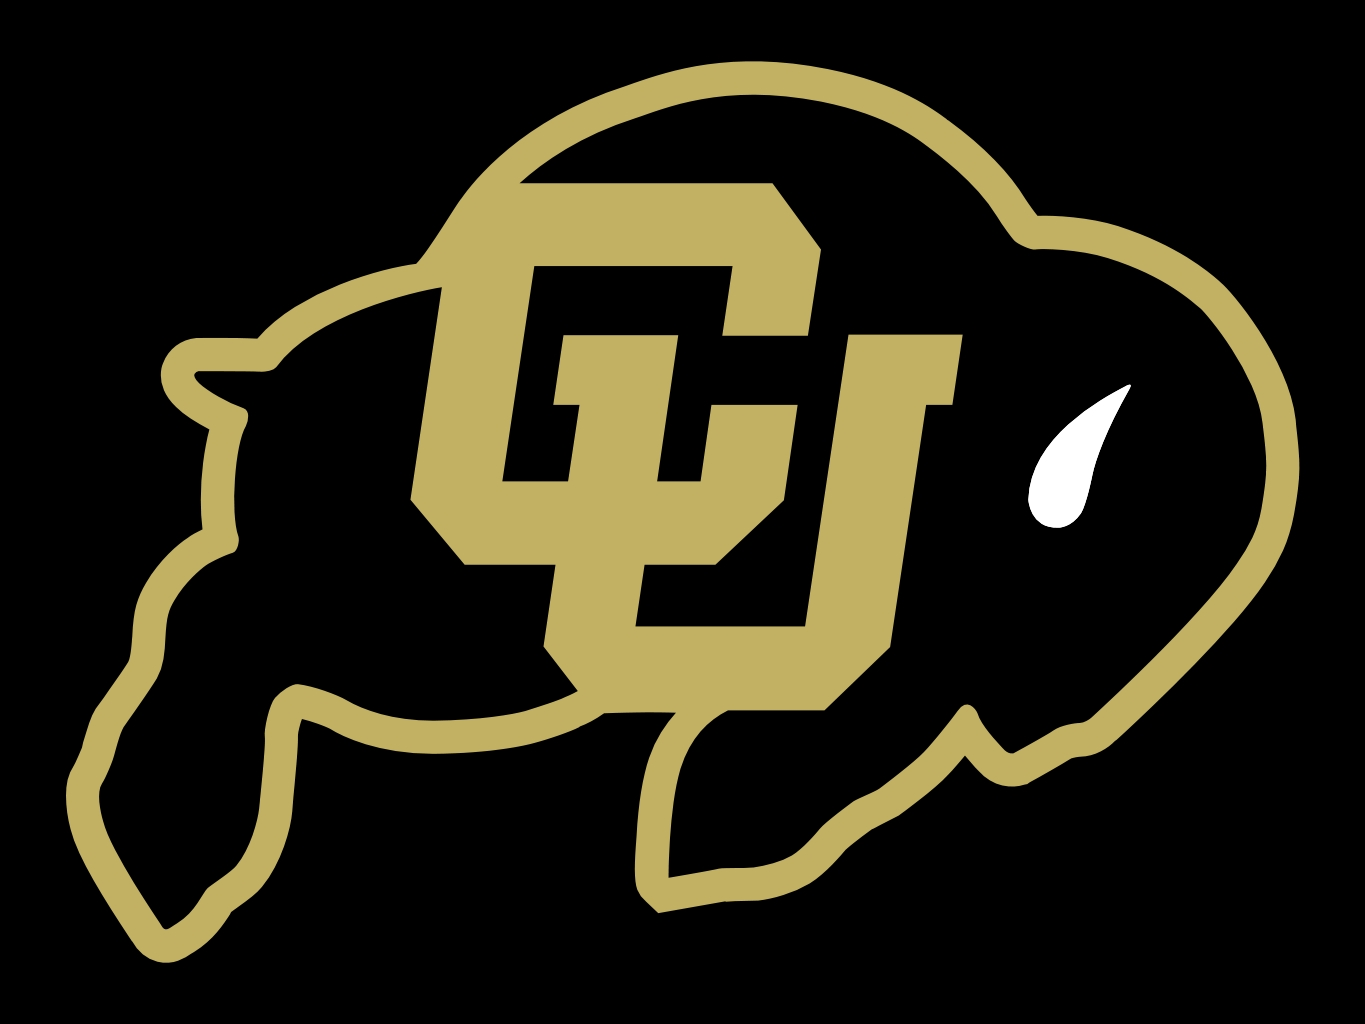 Colorado buffaloes Logos.